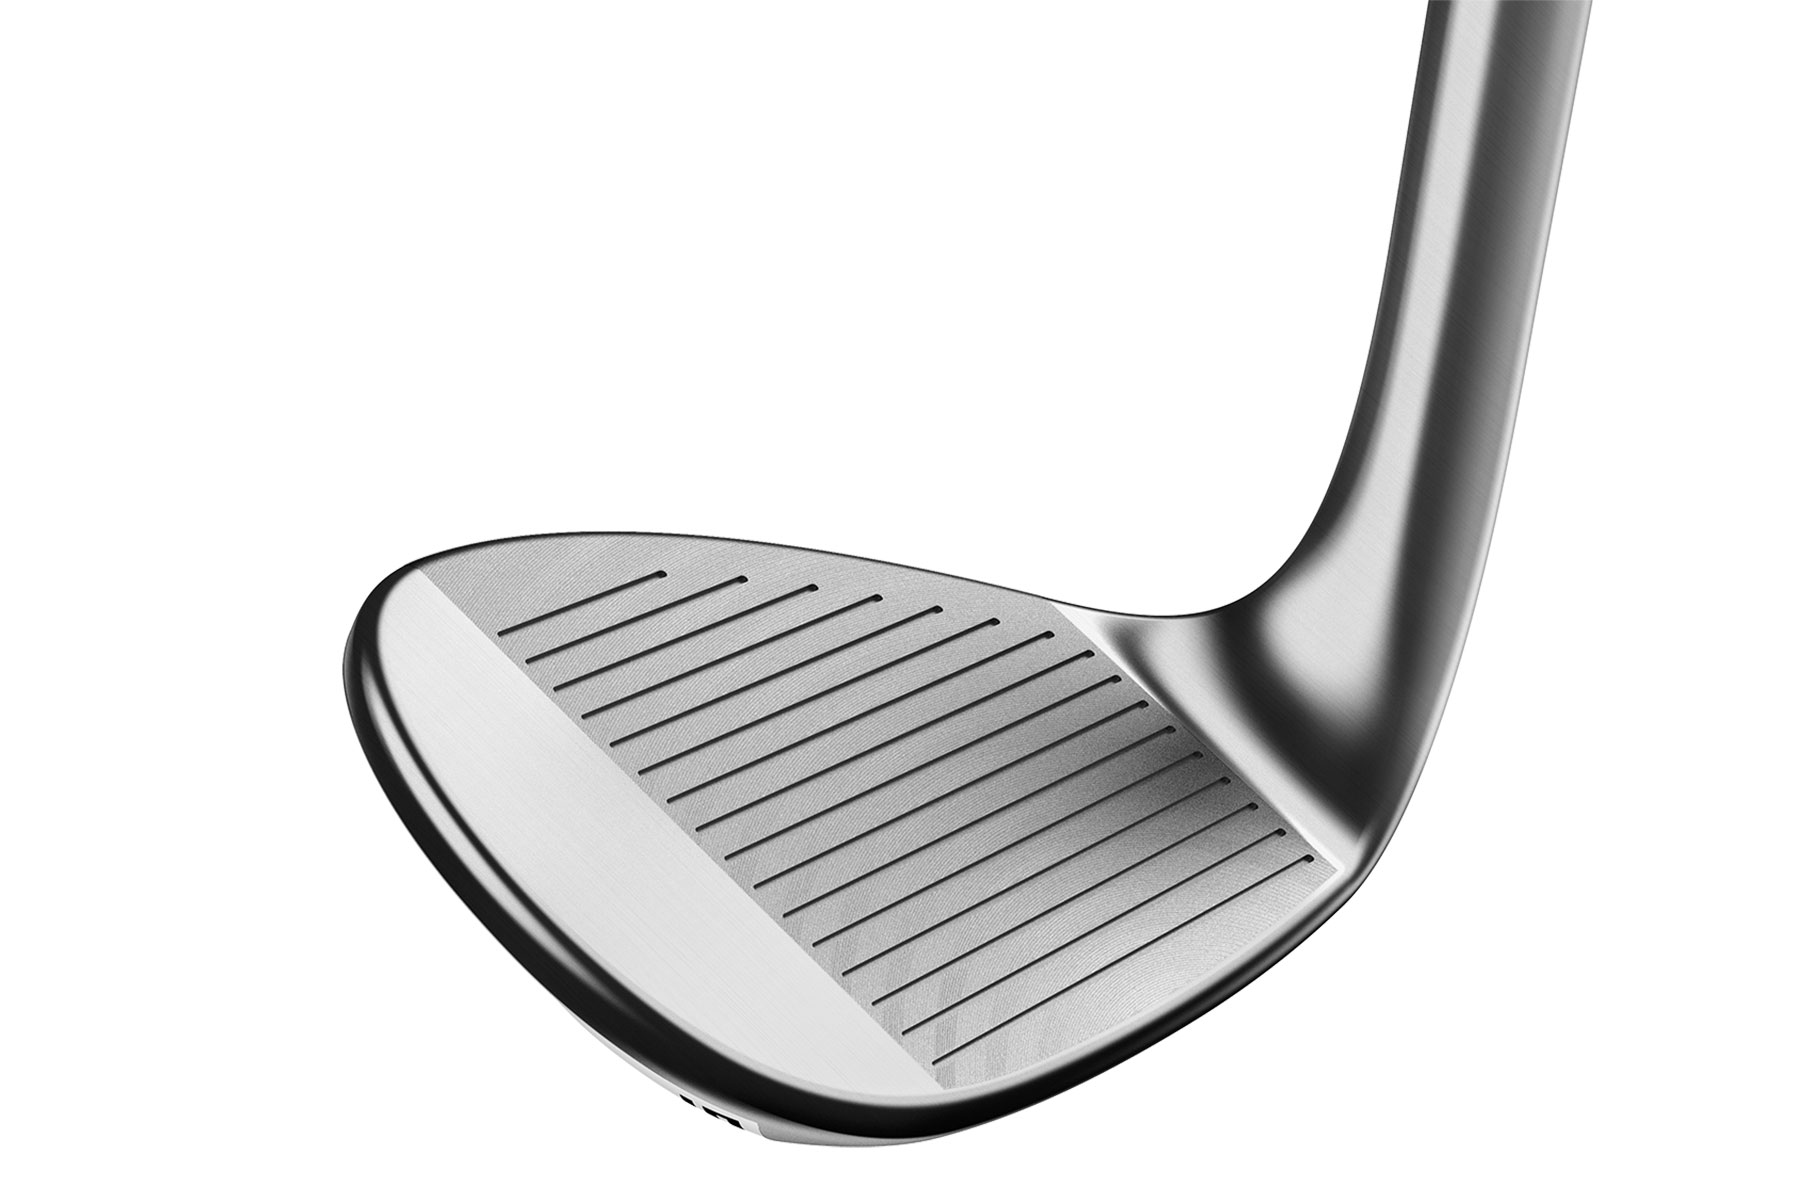 912119 besides 2863 Cobra King F6 Fairway likewise Cobra Golf King Pur Versatile Wedge 313119 together with 261181675706 further Cobra King Forged Tour Iron Set With Steel Shafts. on golf cart bags for sale king cobra